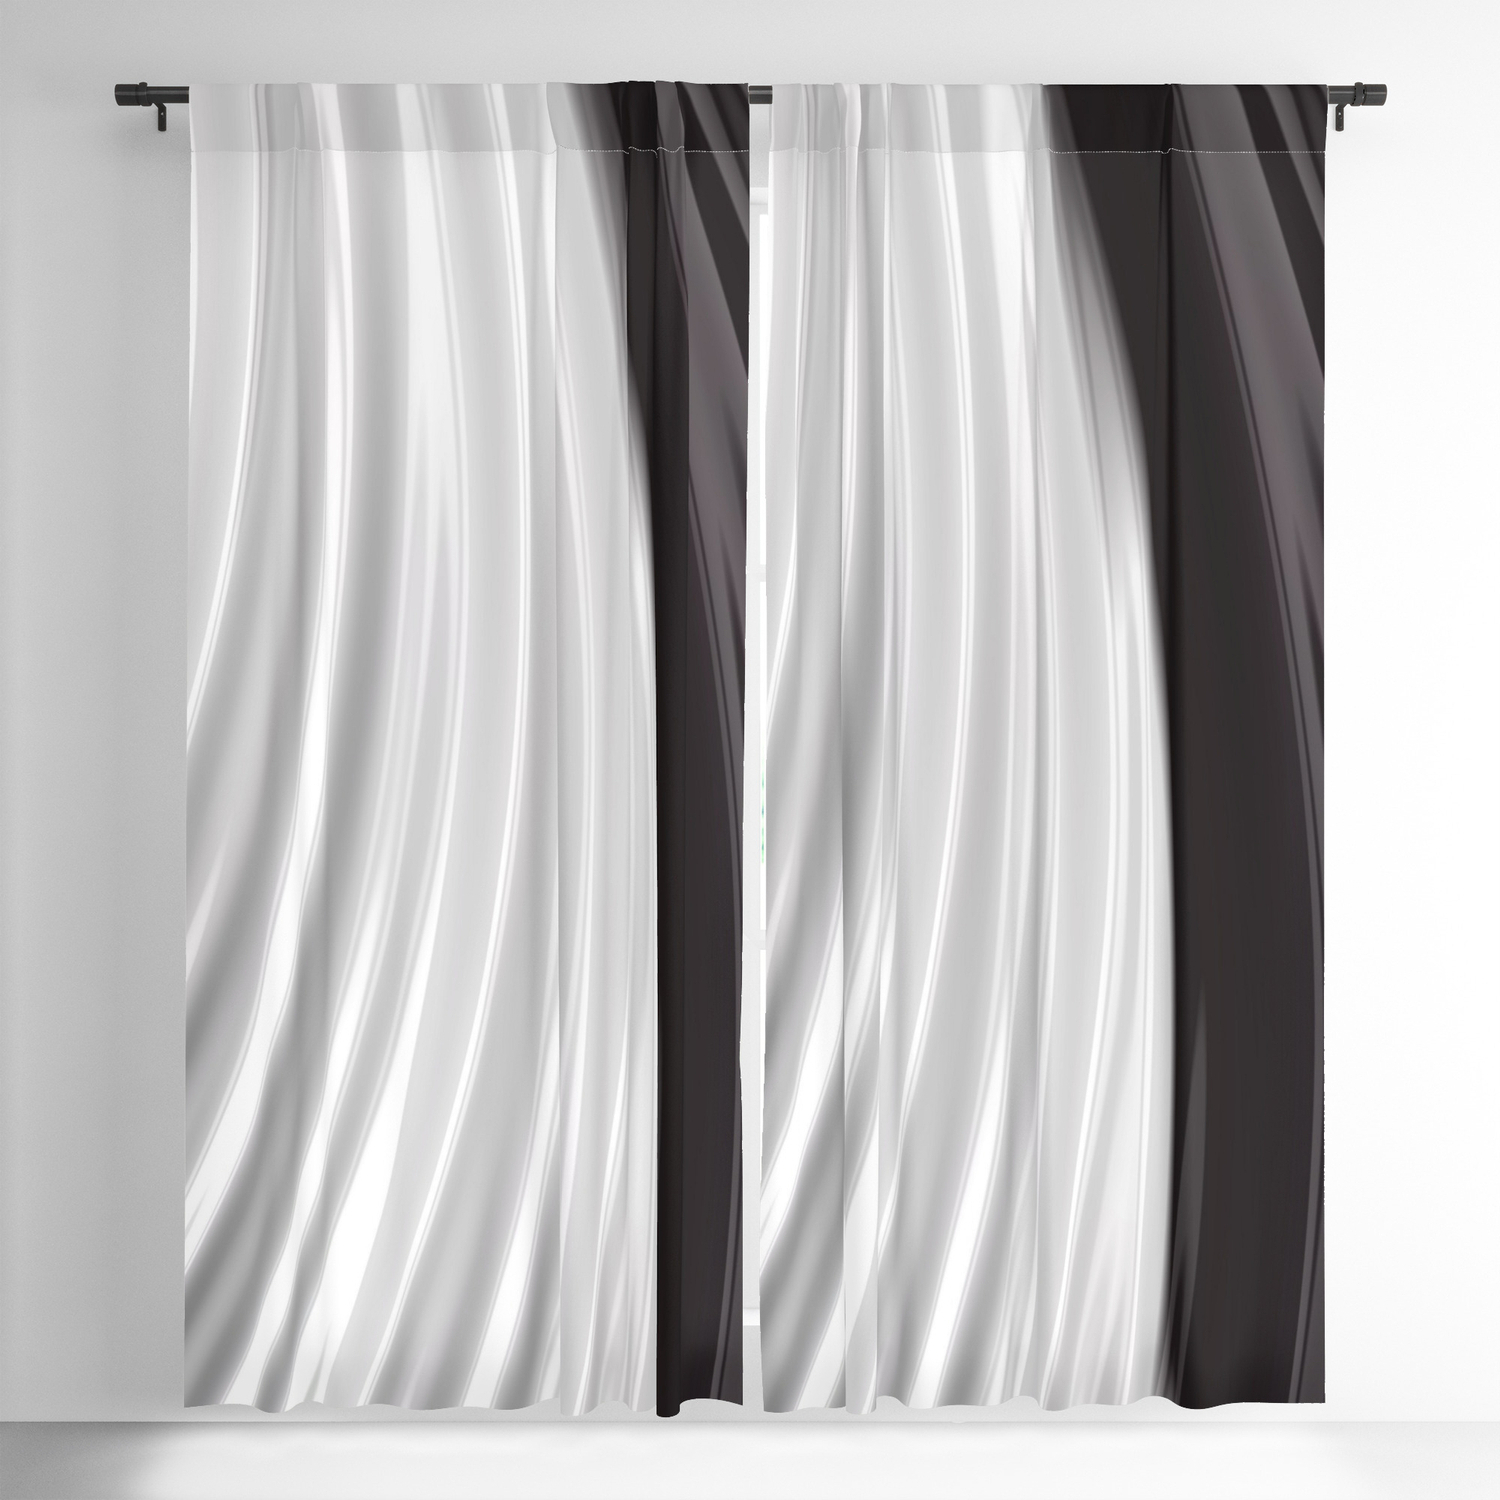 Keyes Blackout Single Curtain Panels Intended For Current Piano Keys Blackout Curtainlindamillar (Gallery 7 of 20)